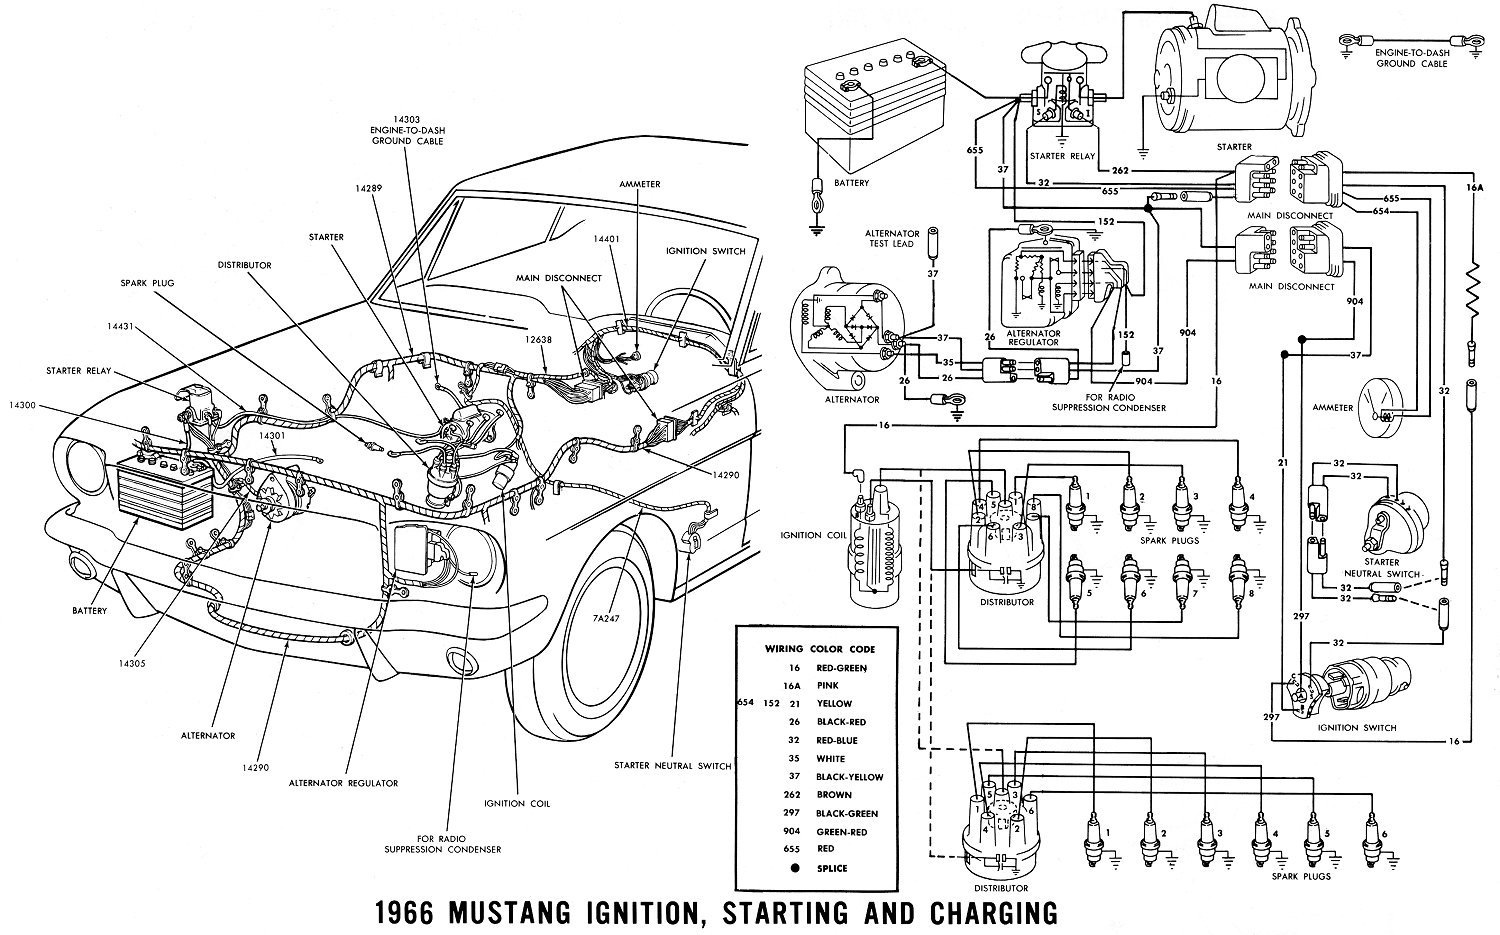 2002 mustang engine diagram